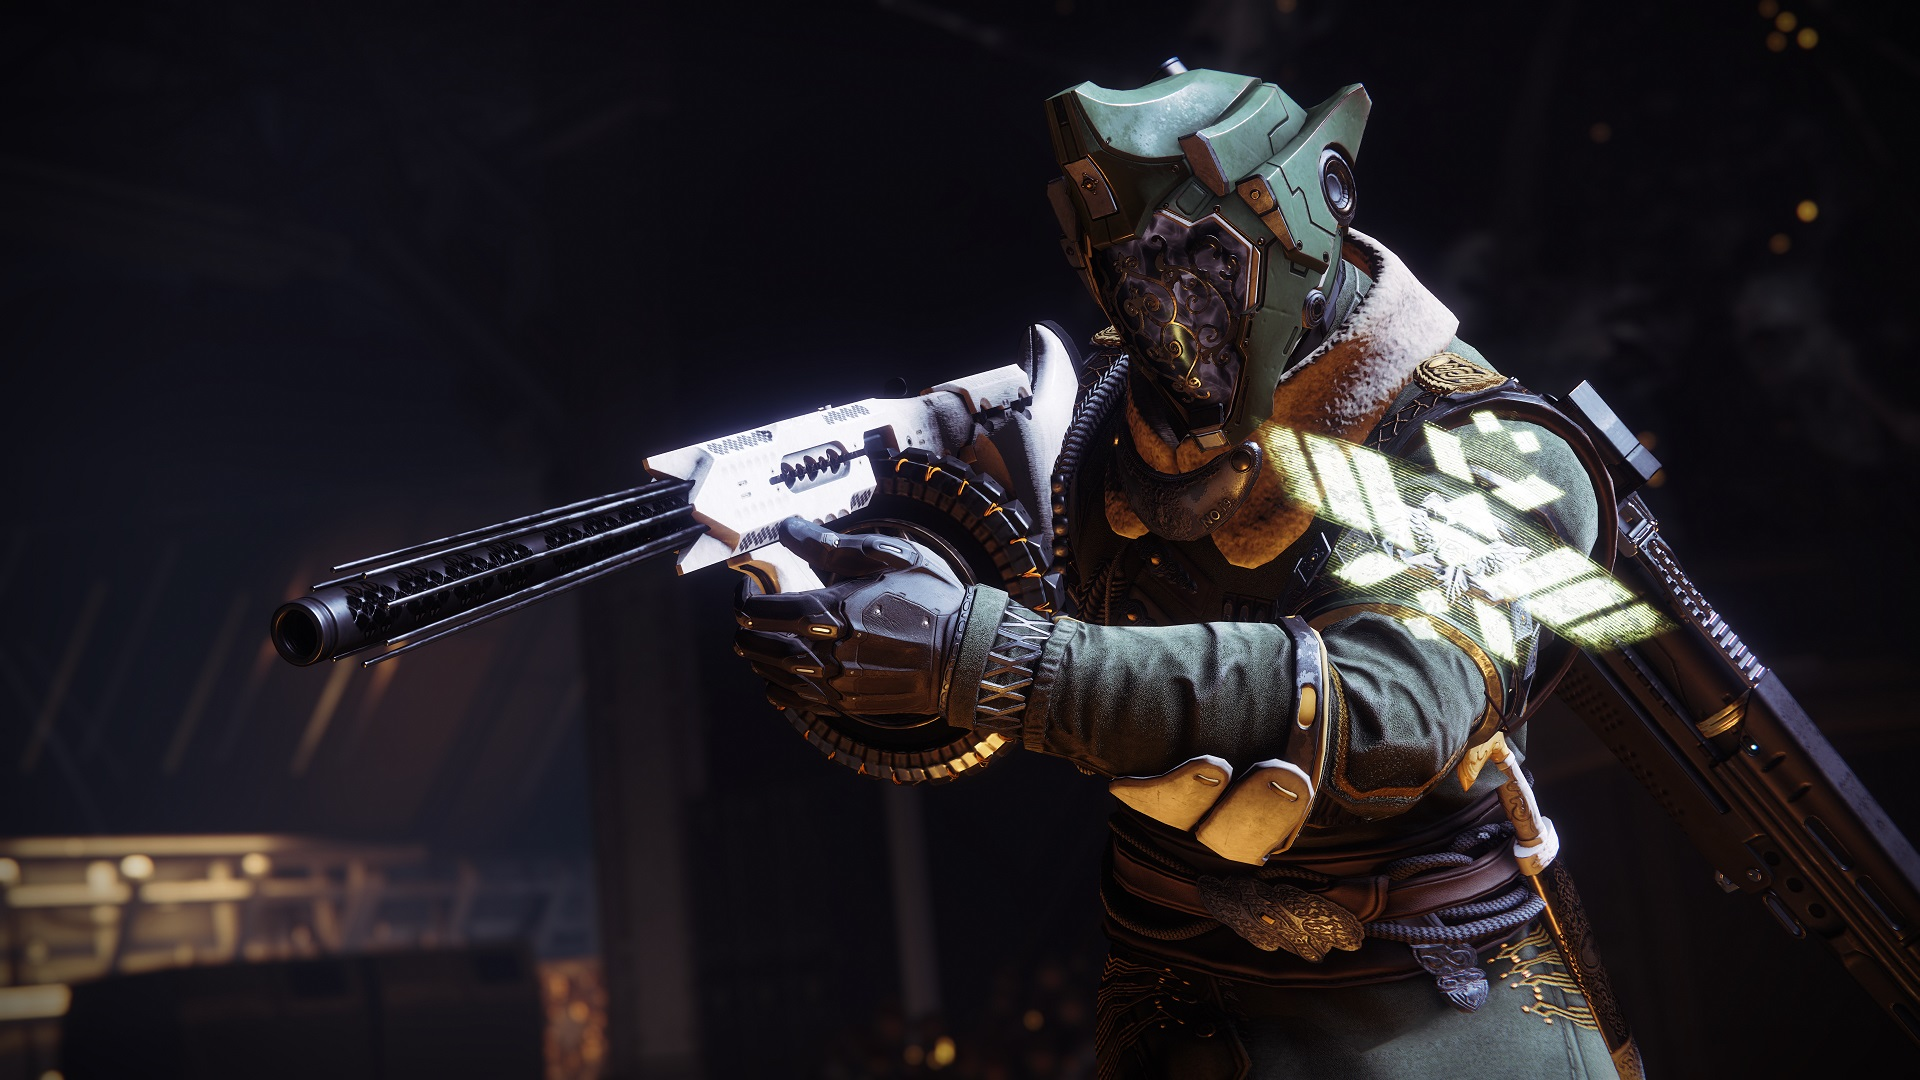 destiny-2-is-coming-to-next-gen-consoles